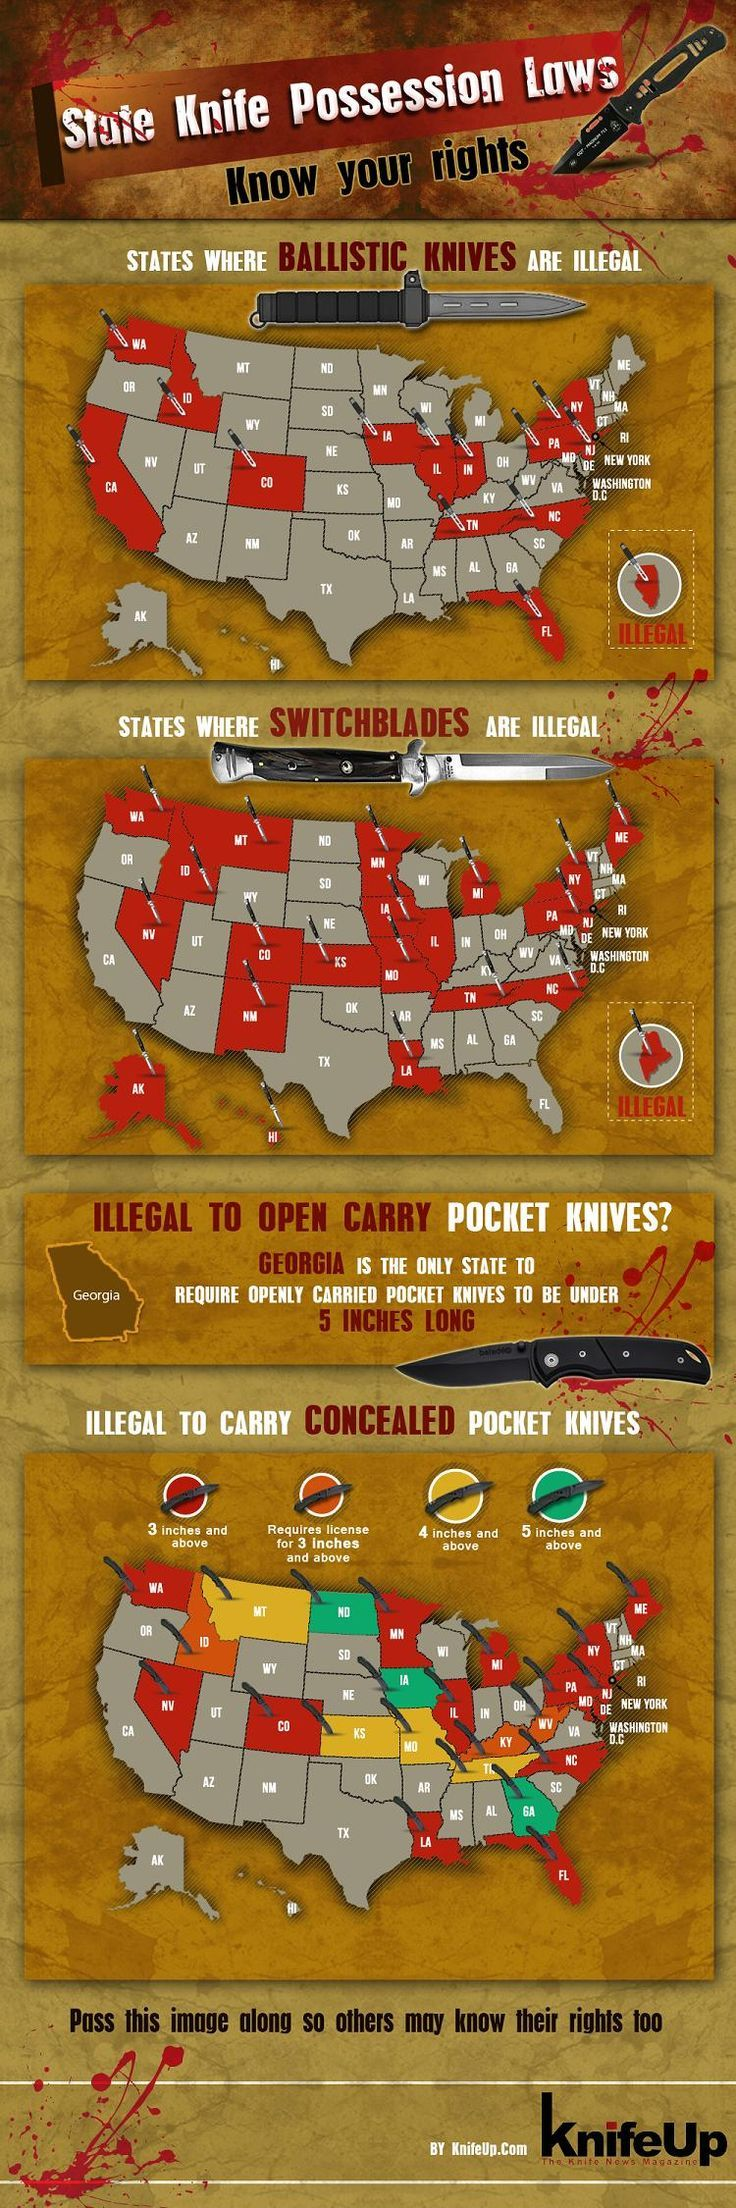 The state knife possession laws have never been easy to find, until this KnivesUp.com infographic showed up.